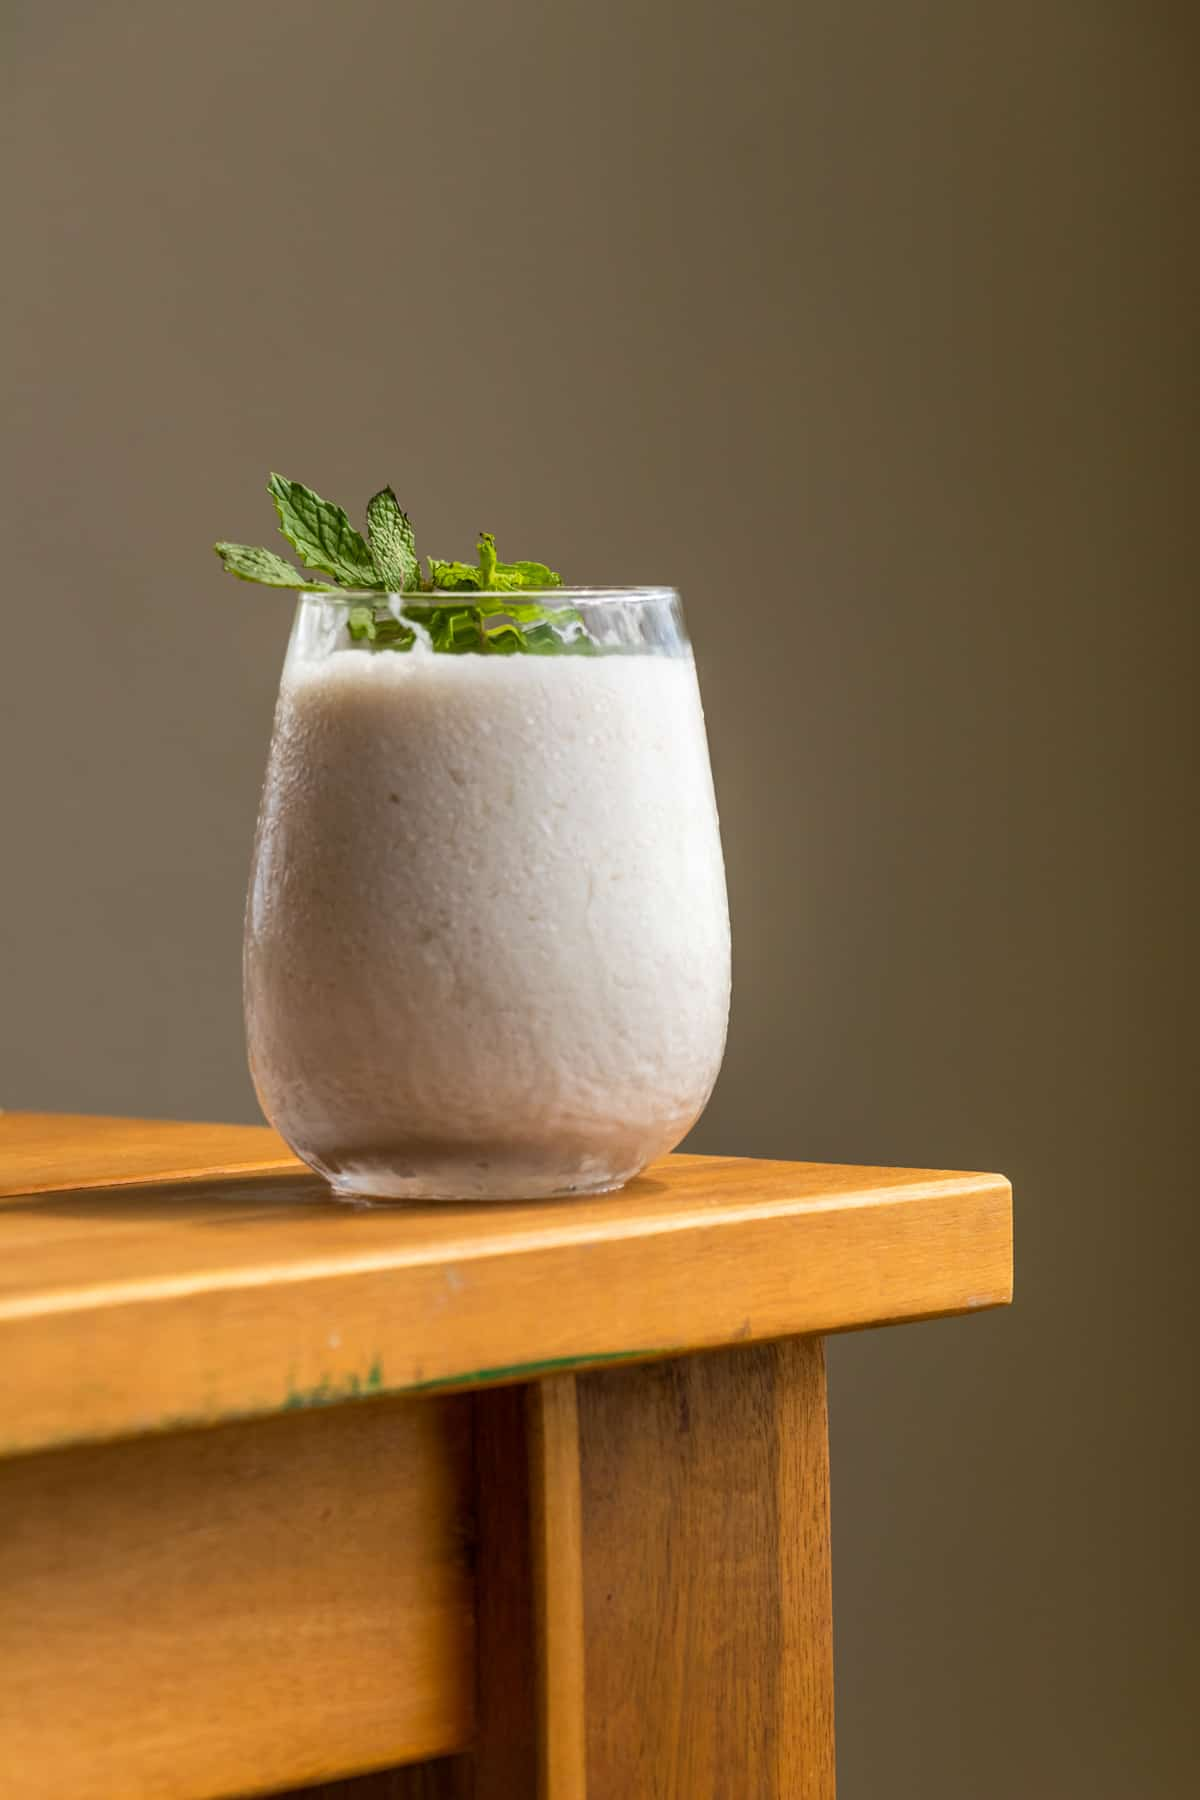 A glass of limonada de coco garnished with fresh mints on a wooden table.